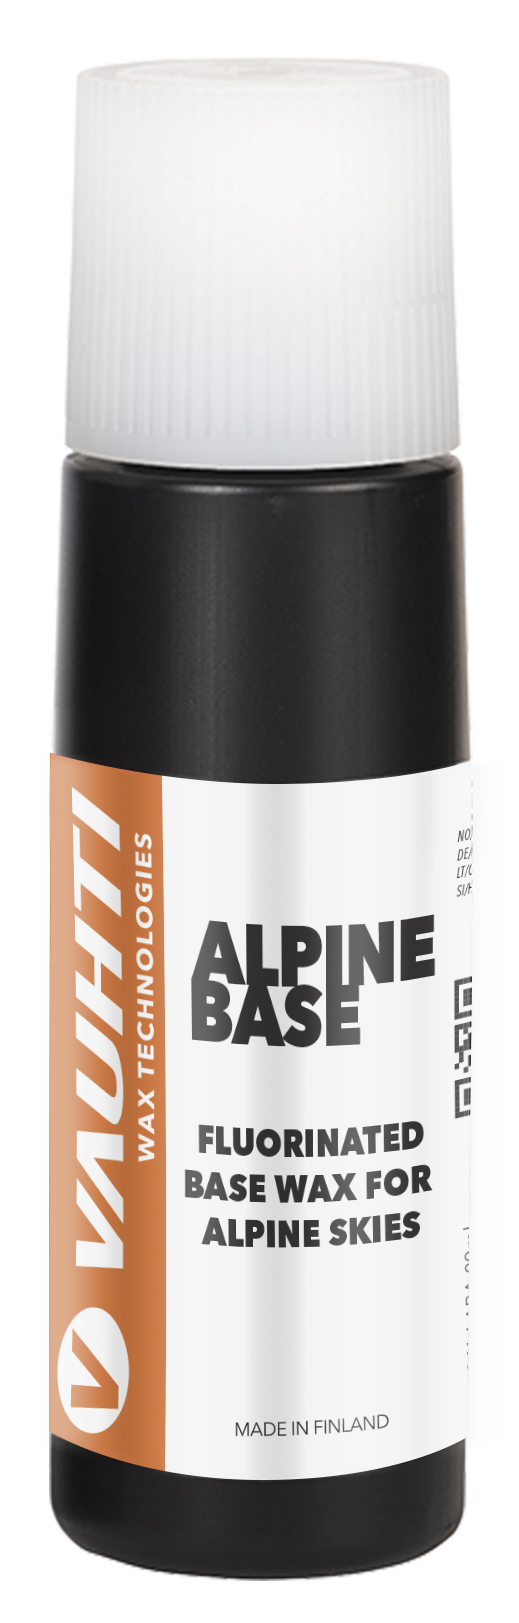 A high-fluoro liquid base wax for alpine skiing and snowboarding.